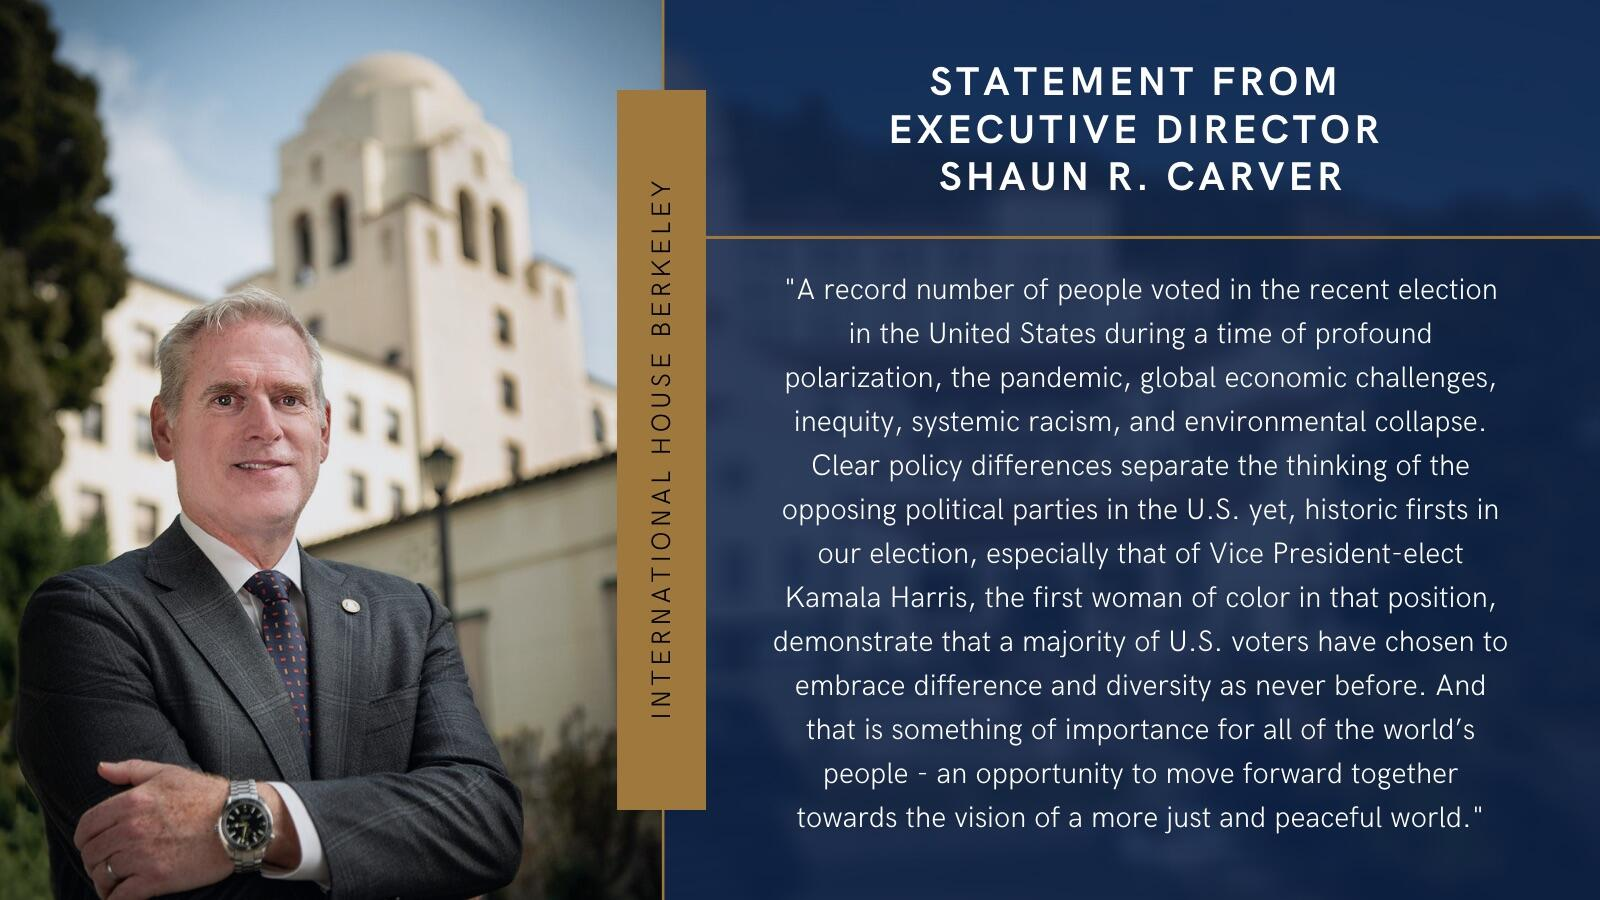 Update from Executive Director Shaun Carver